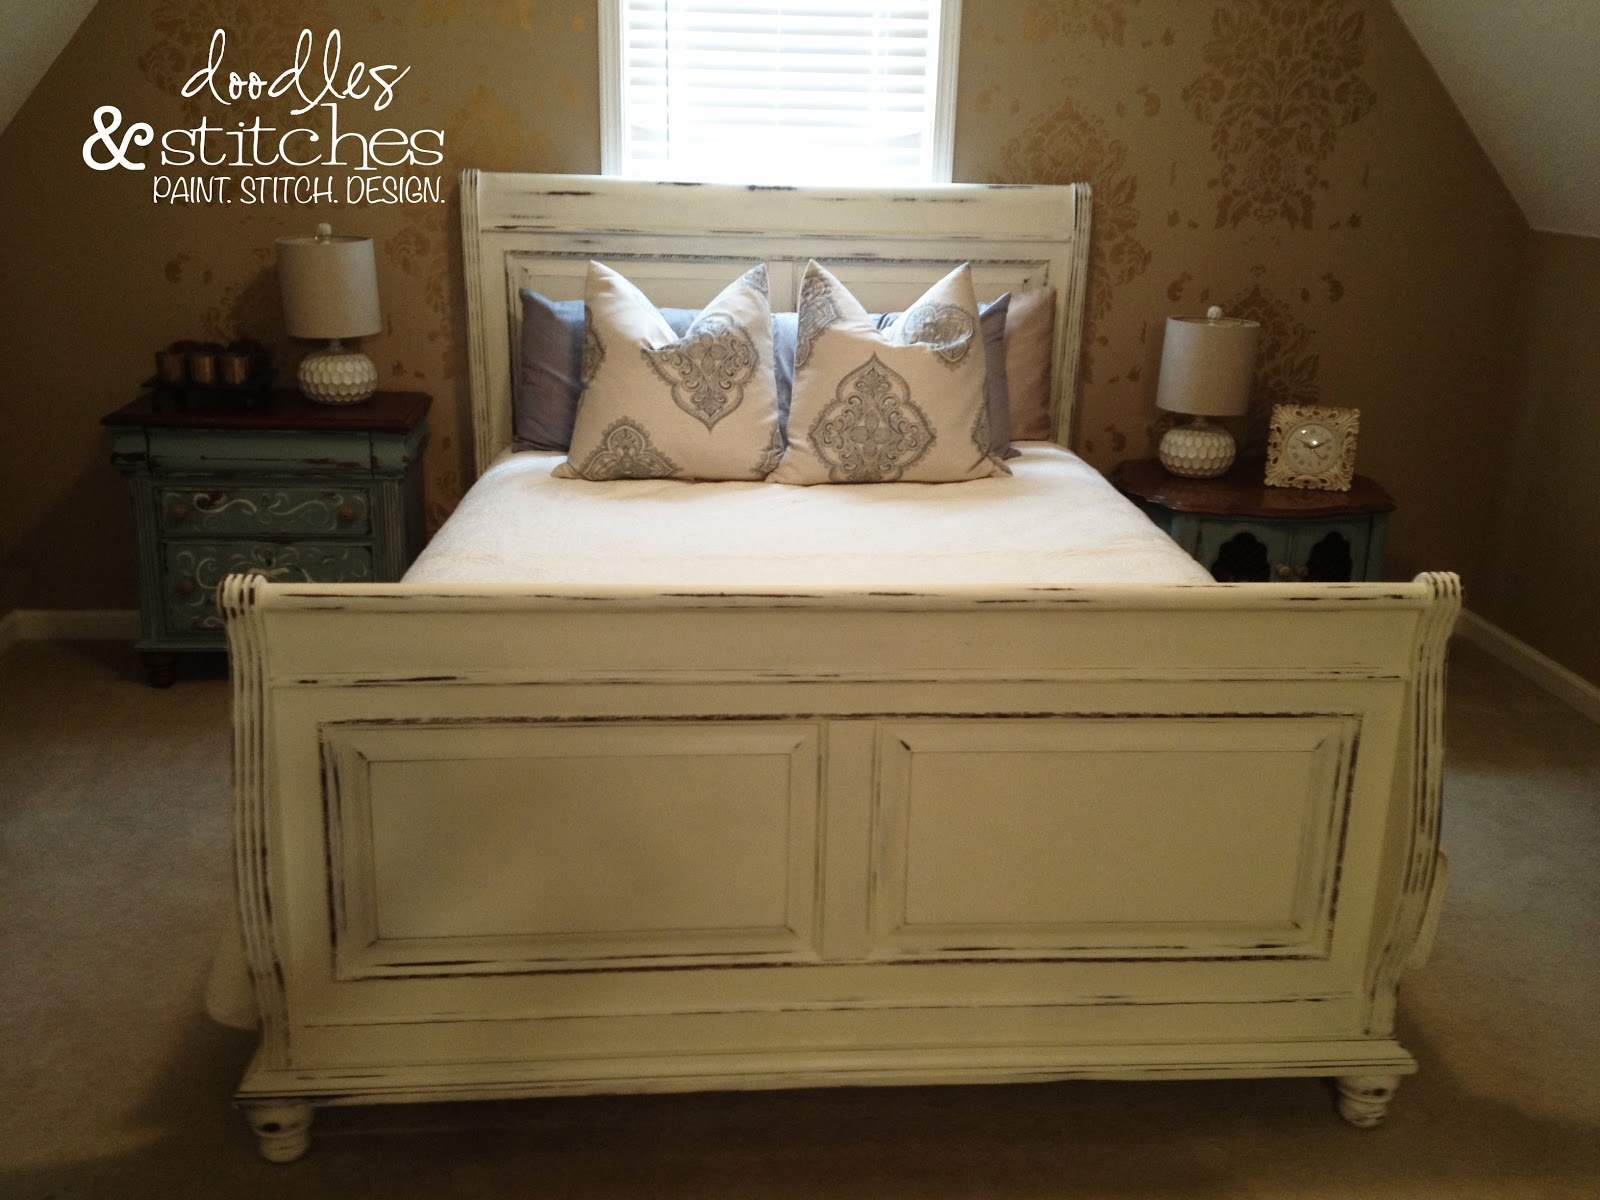 painted sleigh bed doodles stitches